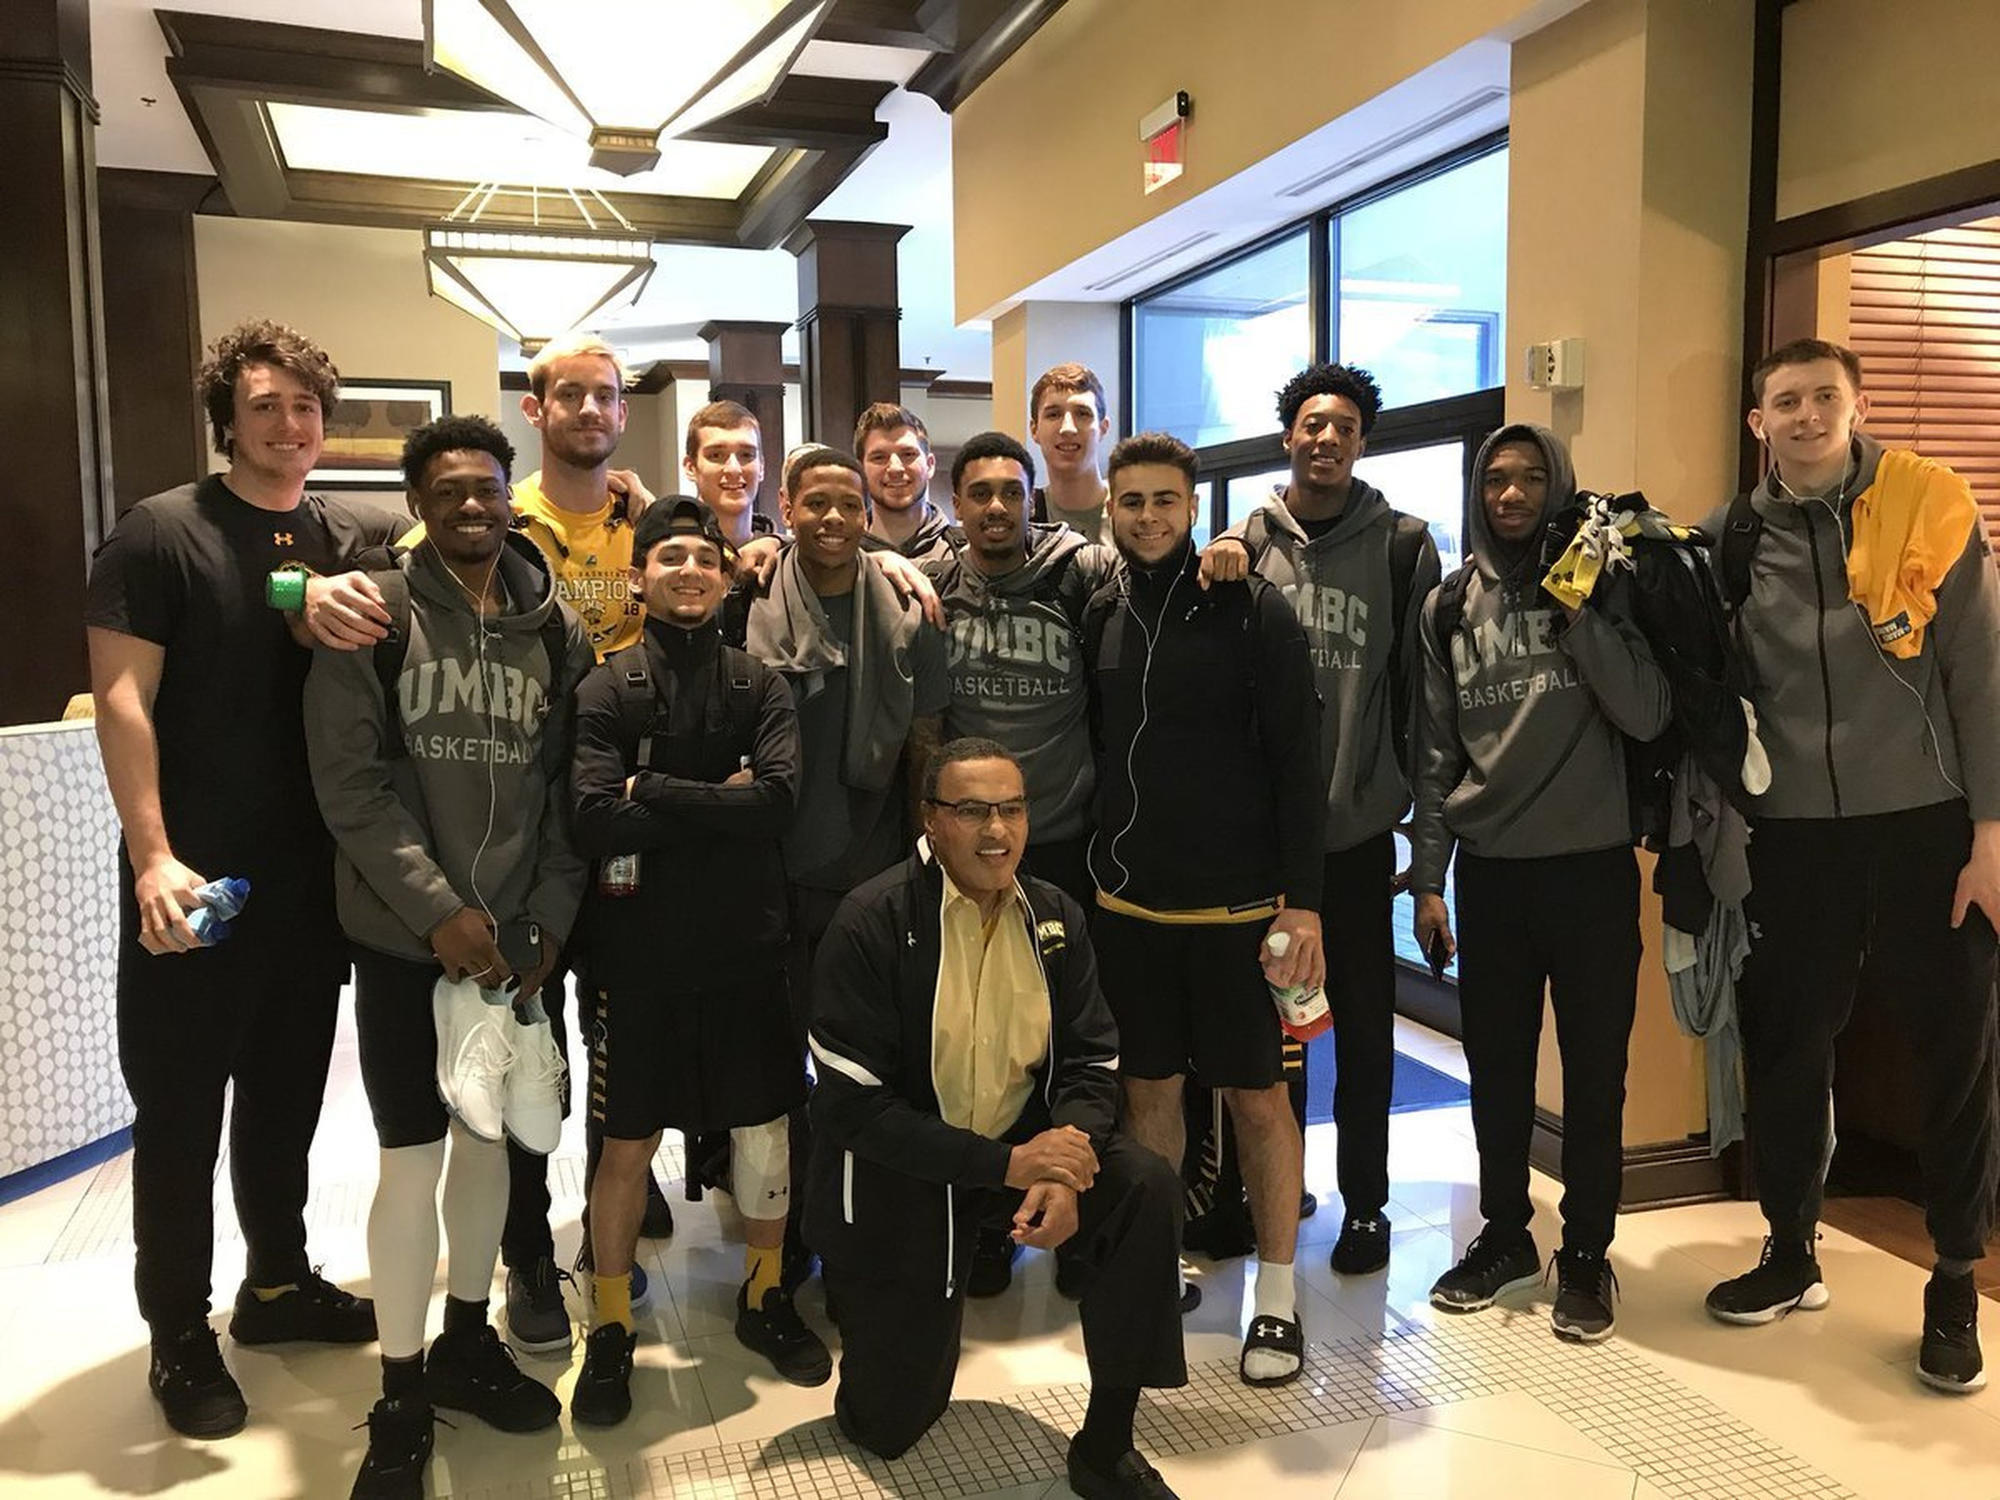 Bs-md-umbc-continued-attention-20180318